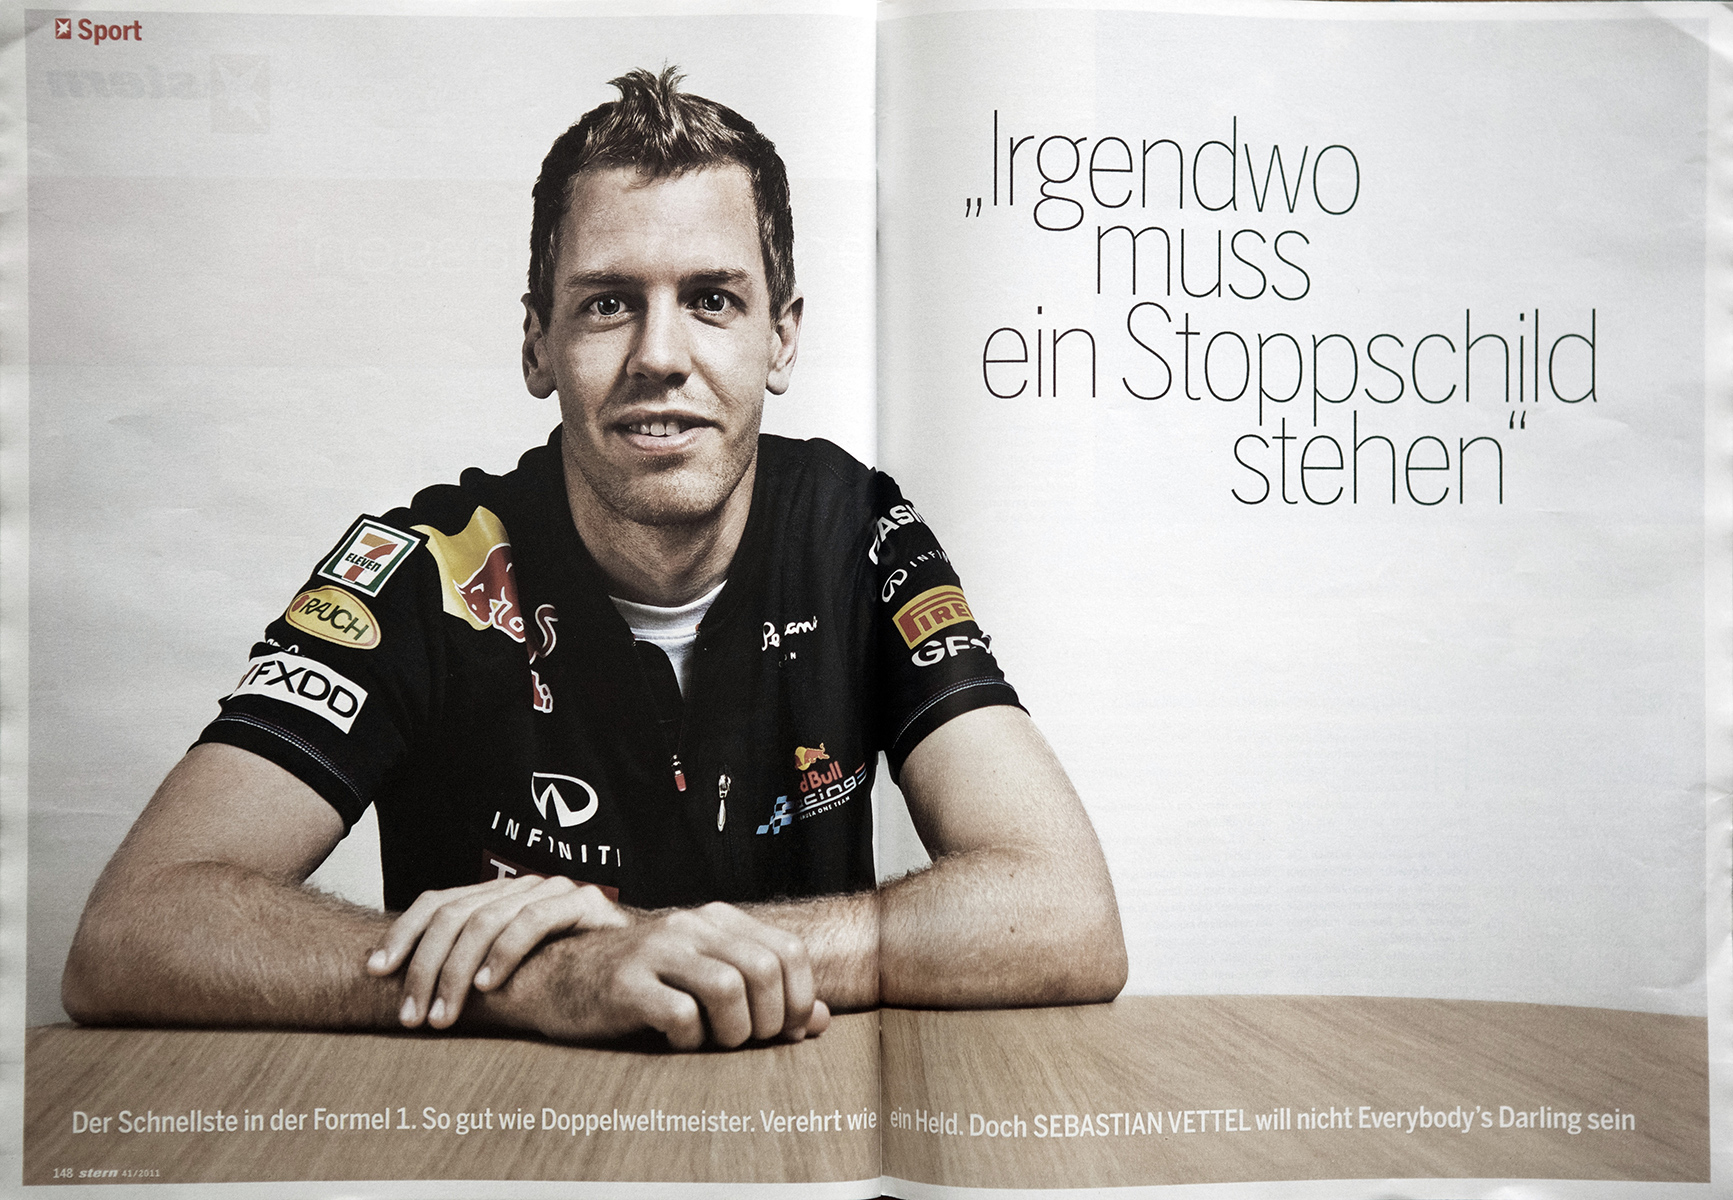 Stern Magazine, Sebastian Vettel, F1 world champion